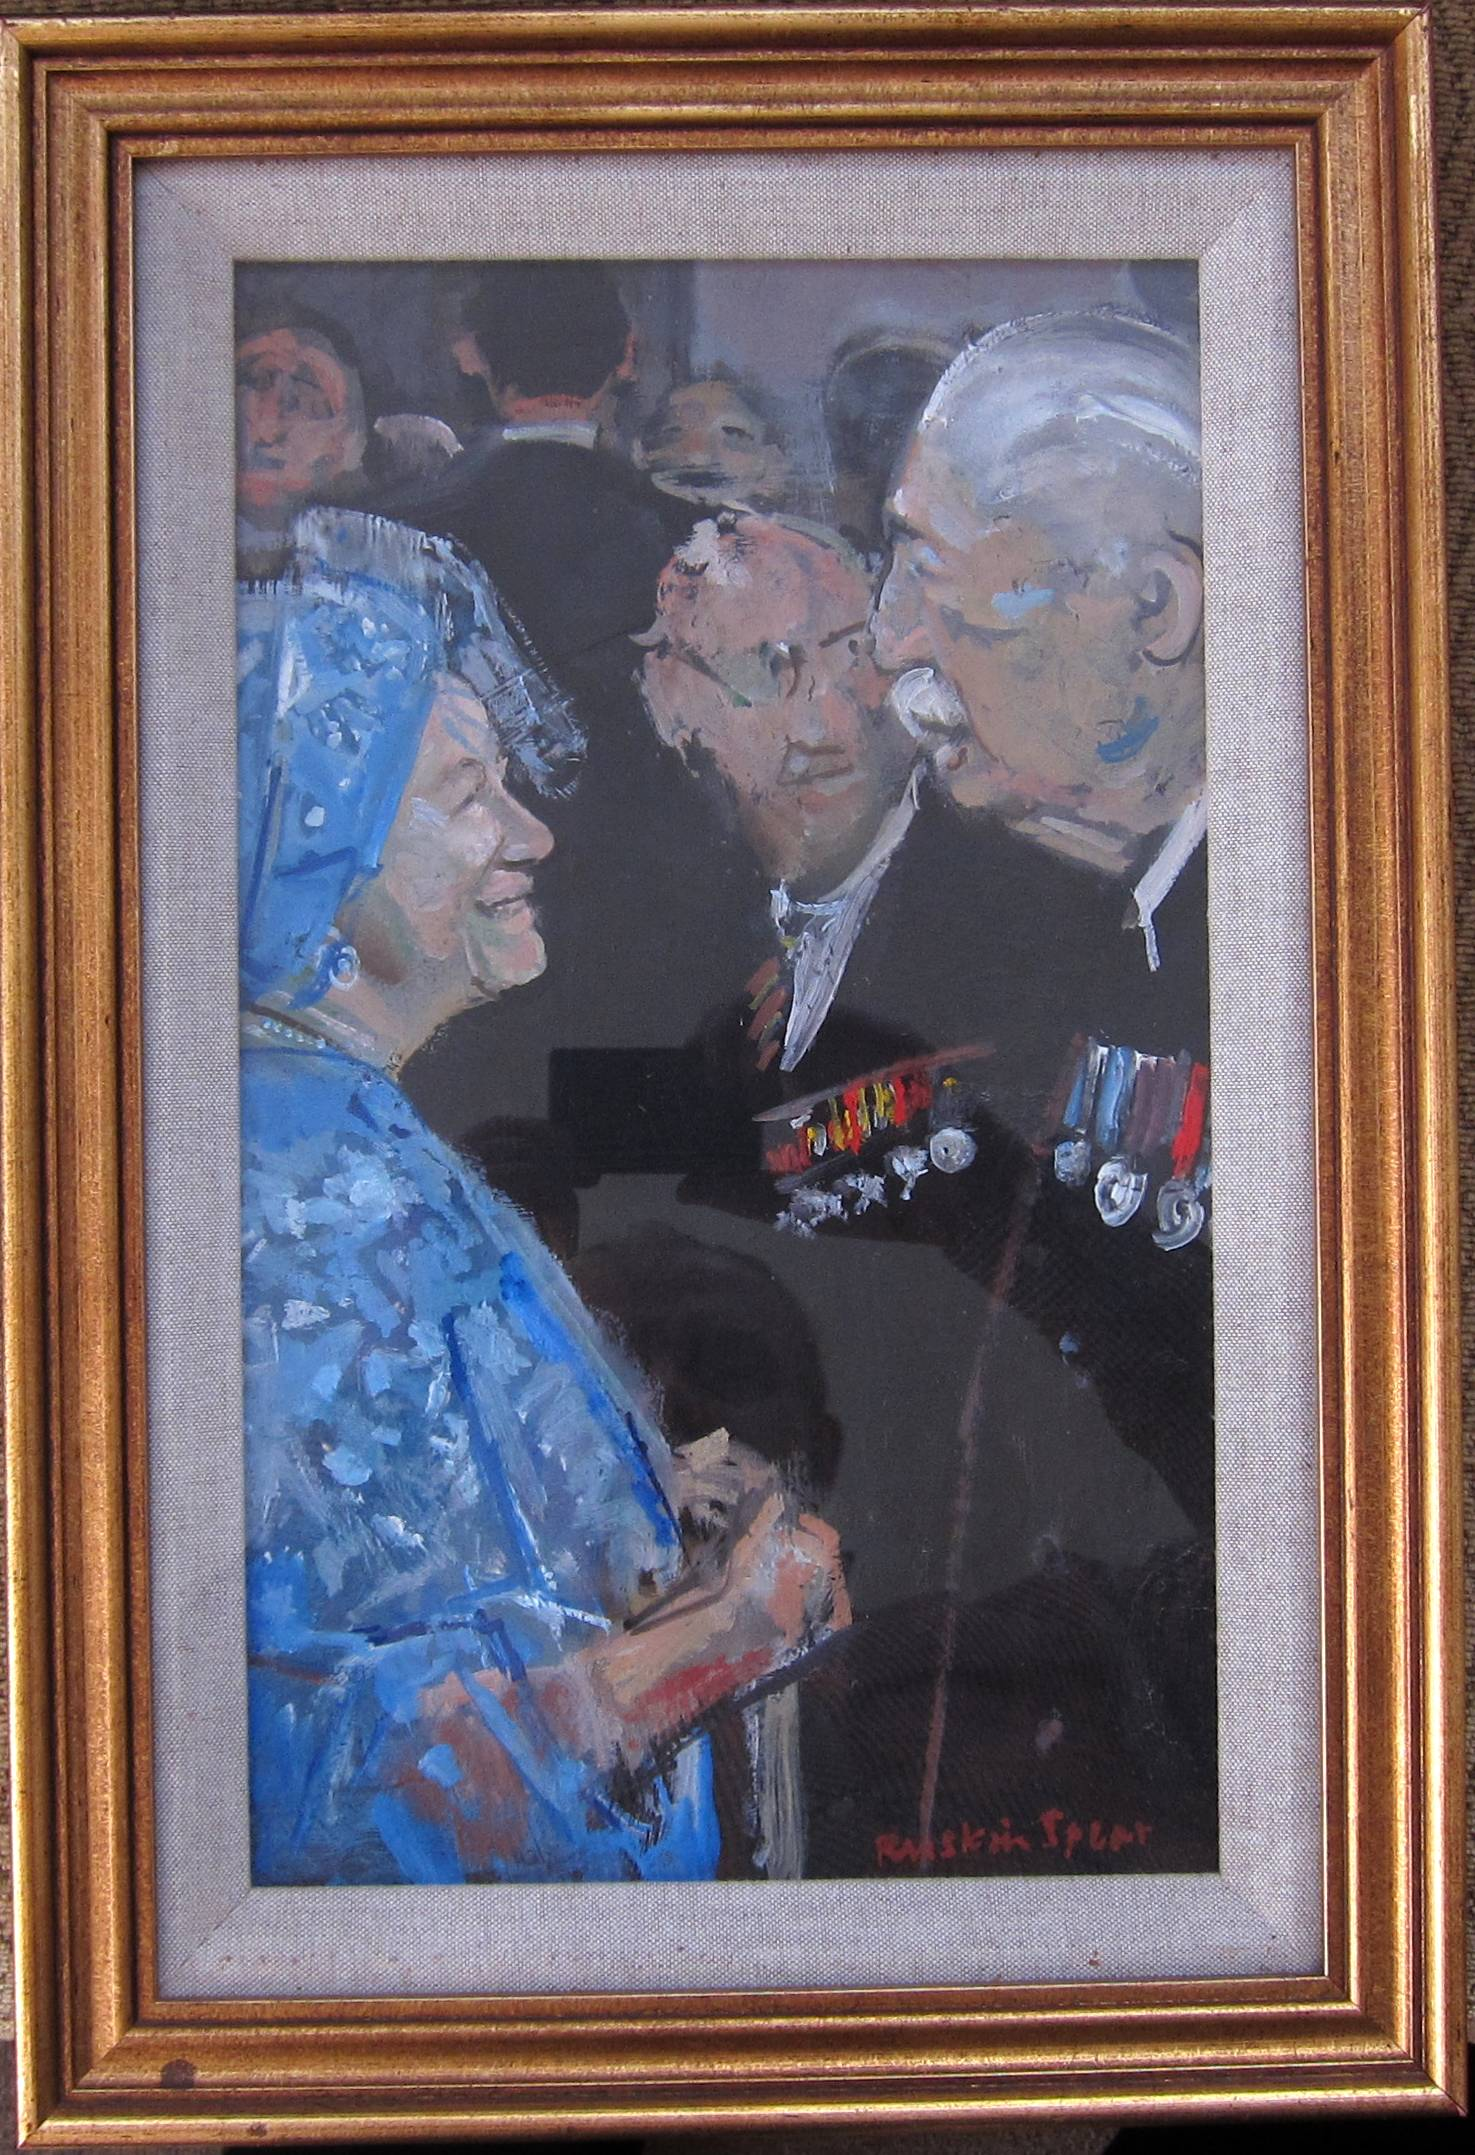 RUSKIN SPEAR, R.A. [1911-90]. Queen Elizabeth [the Queen Mother] and Harold MacMillan [the Prime - Image 2 of 2